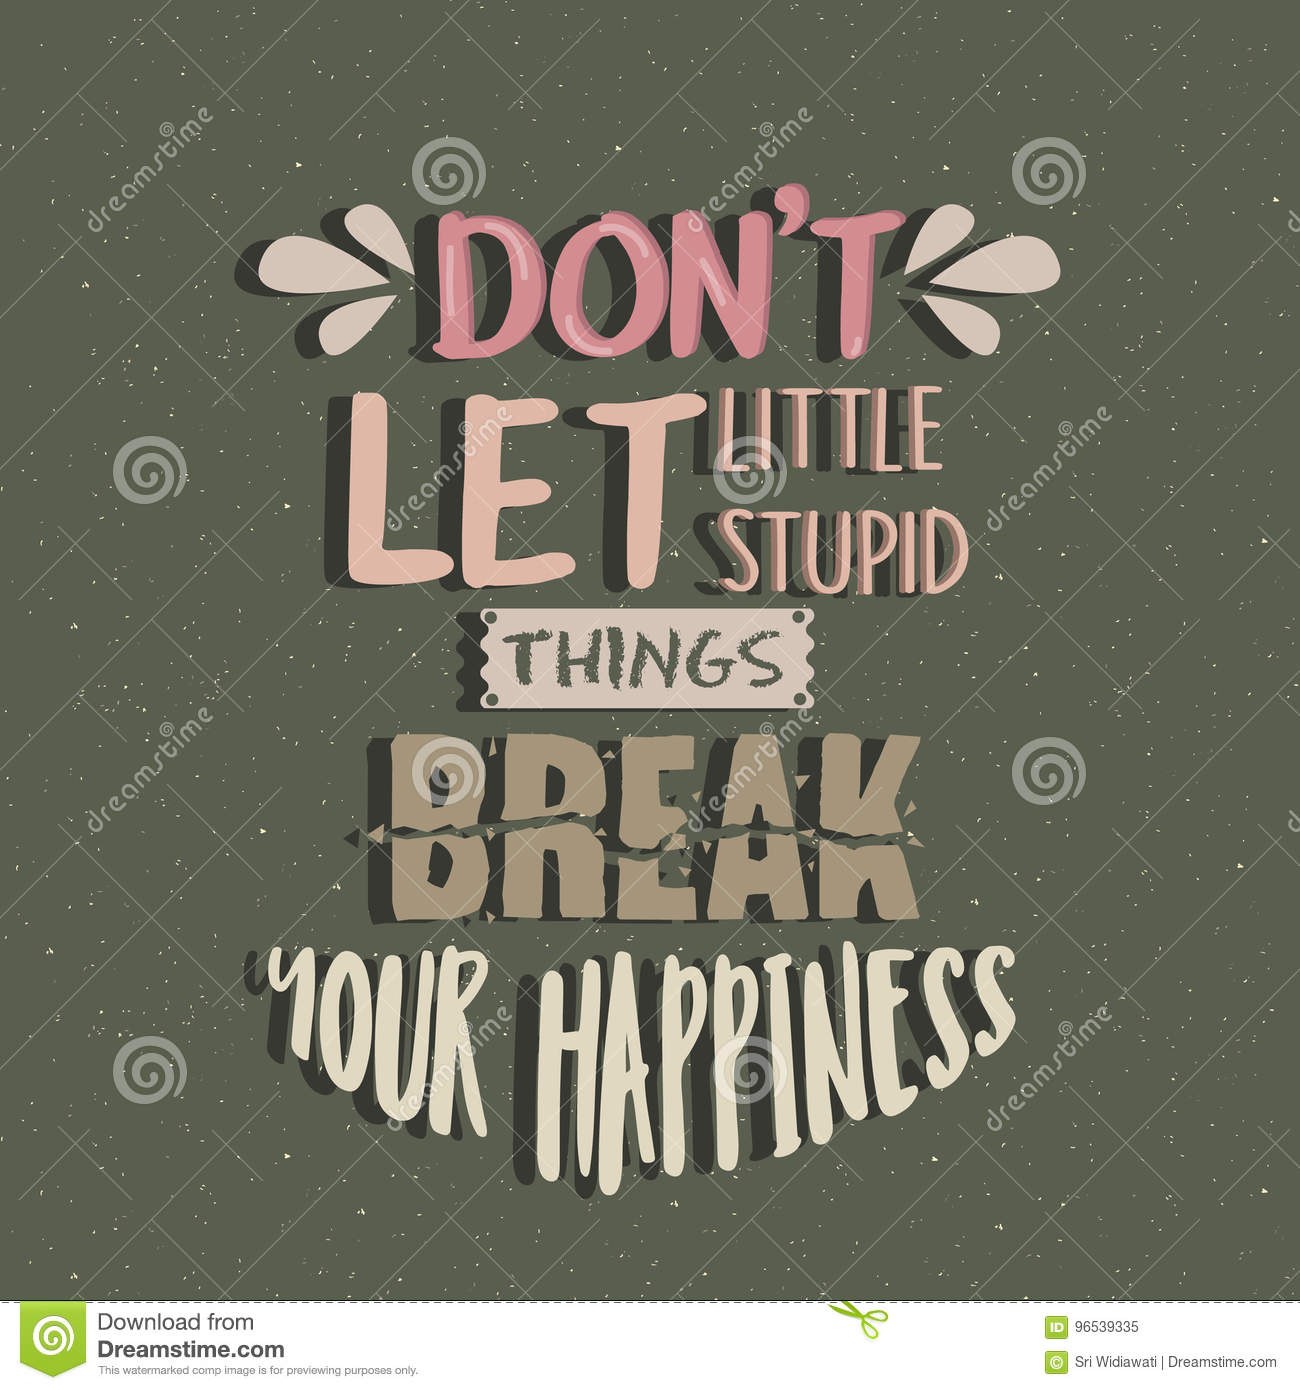 Quotes About Saying Stupid Things: Don T Let Little Stupid Things Break Your Happiness Quotes